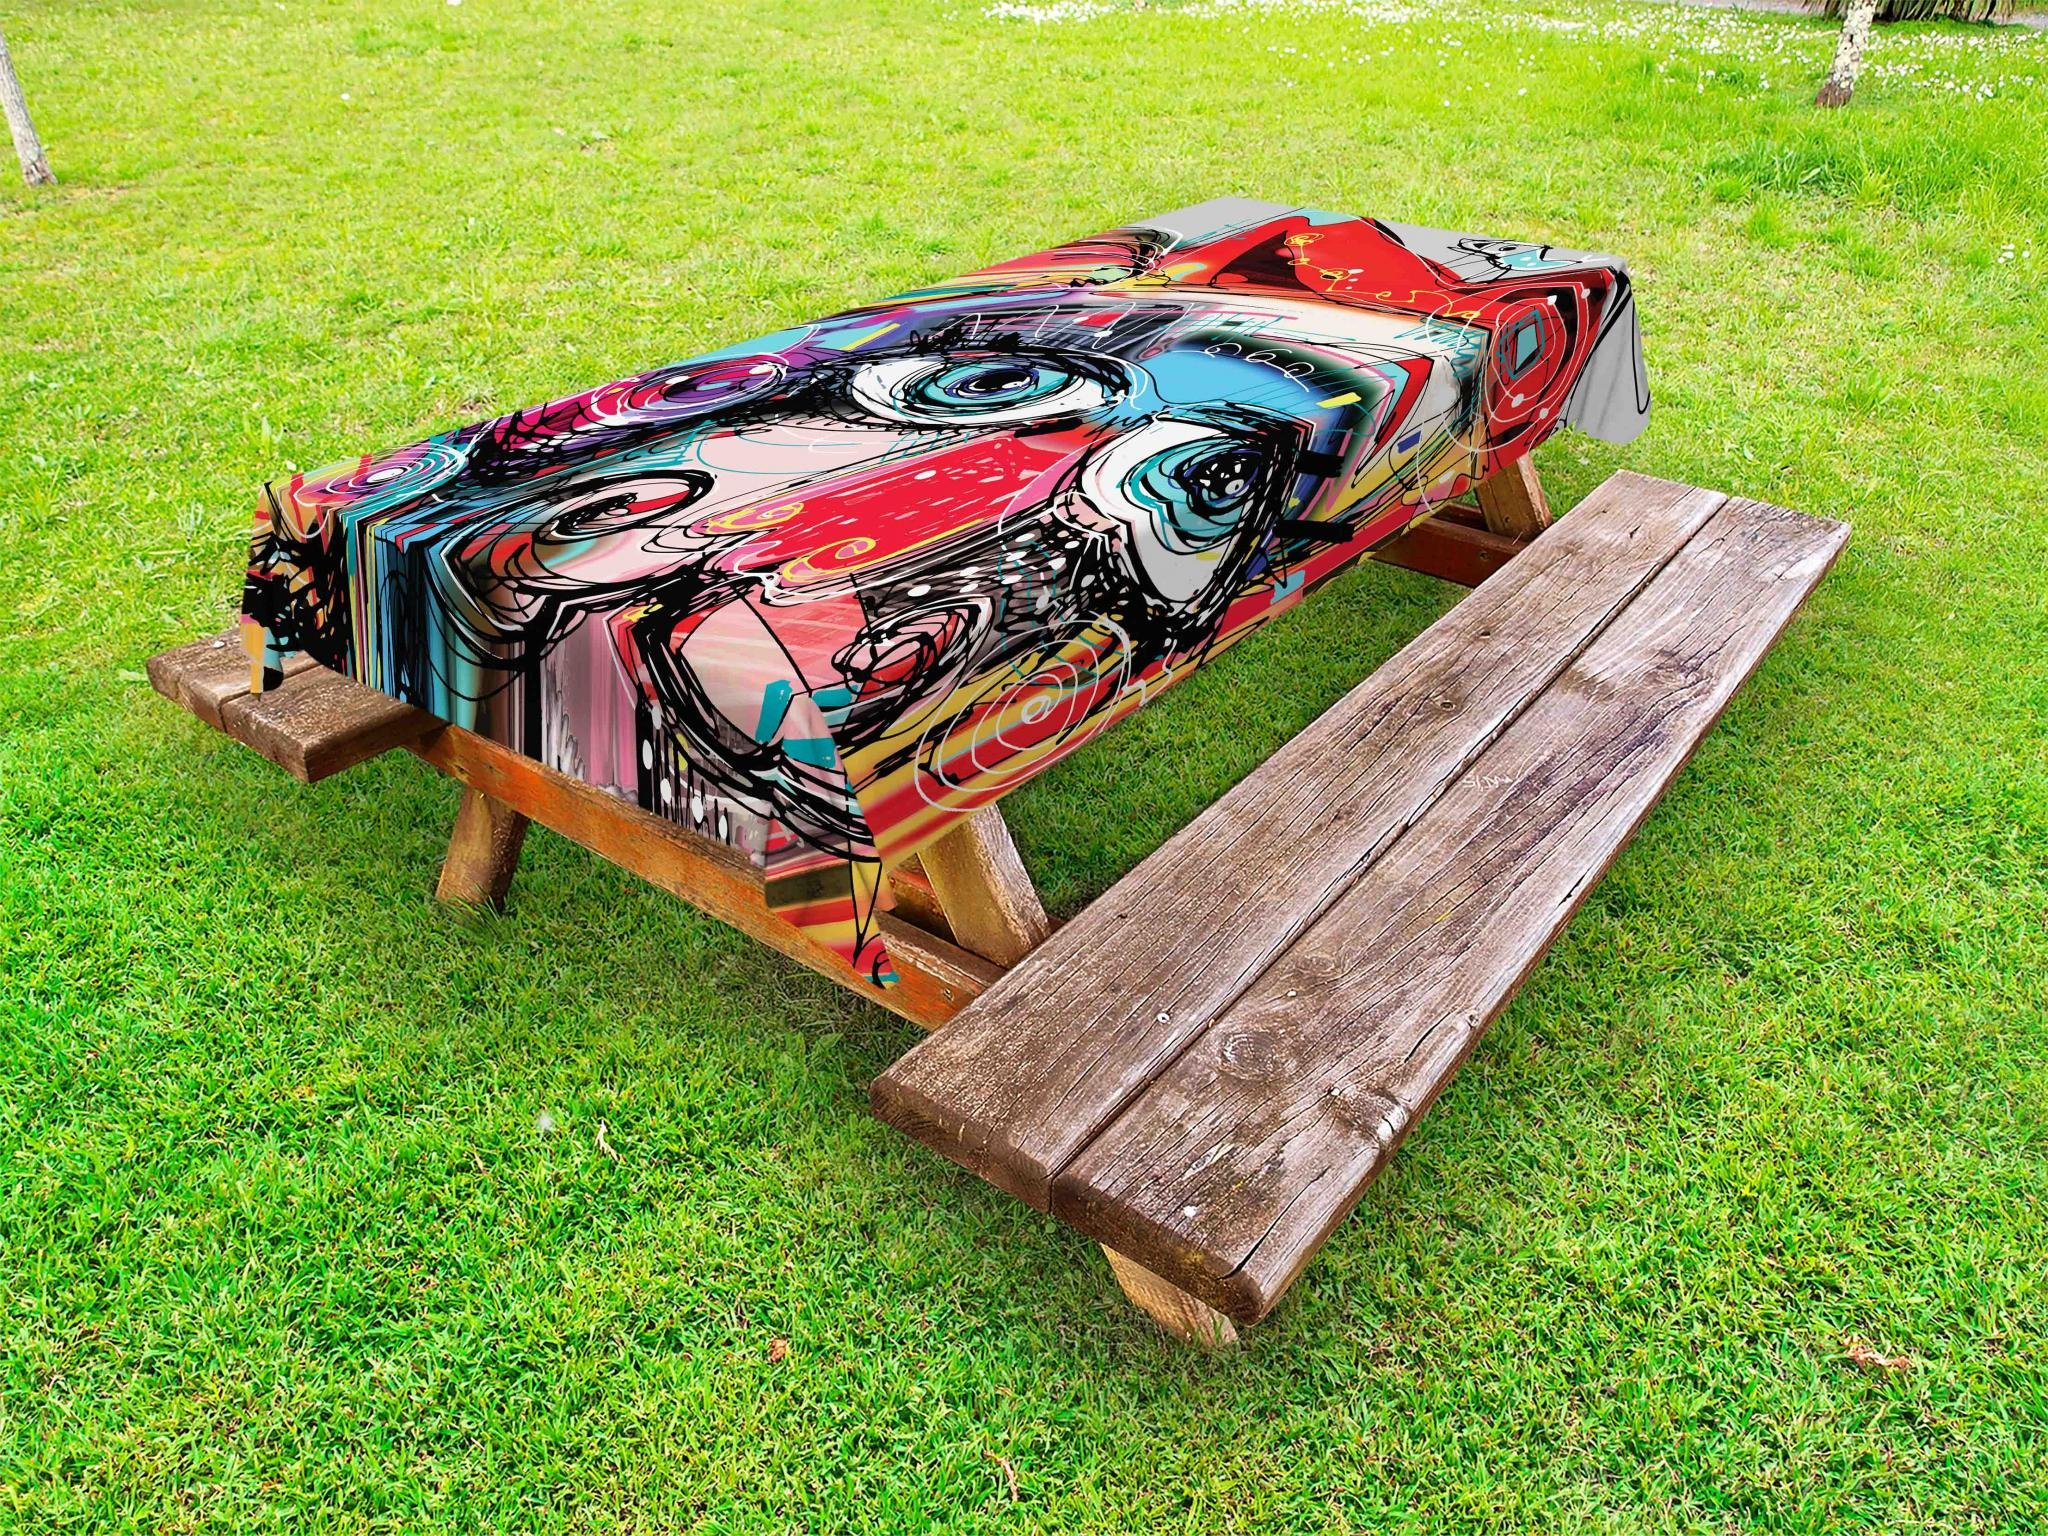 Ambesonne Art Outdoor Tablecloth, Grafitti Like Sketchy Style Colorful Painting with Human Like Face Dog Animal Image, Decorative Washable Picnic Table Cloth, 58 X 120 inches, Multi Colored